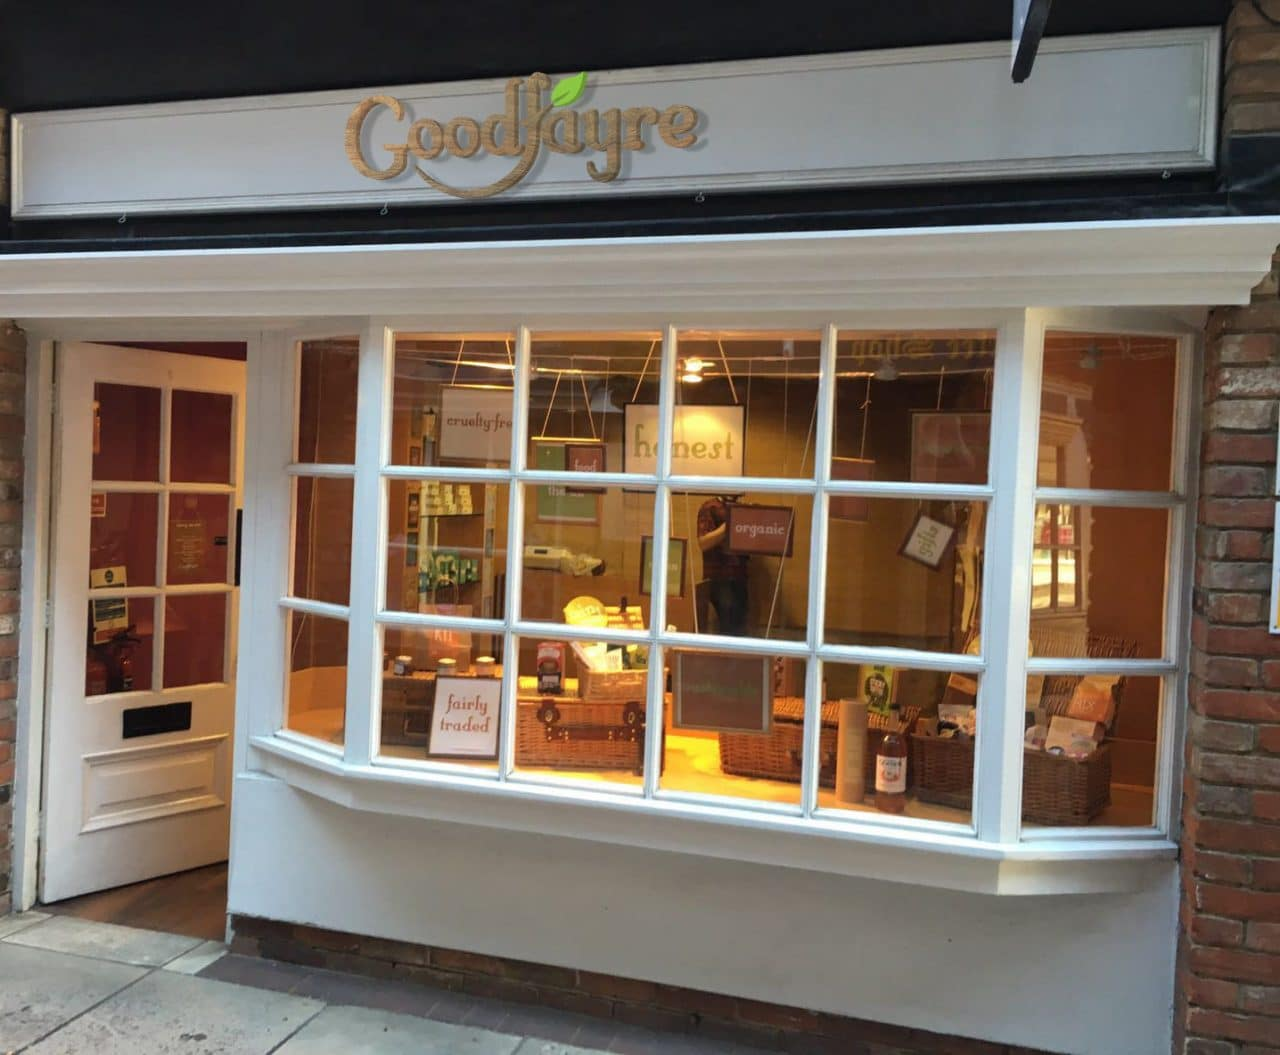 Goodfayre-shop-front-e1471866979105